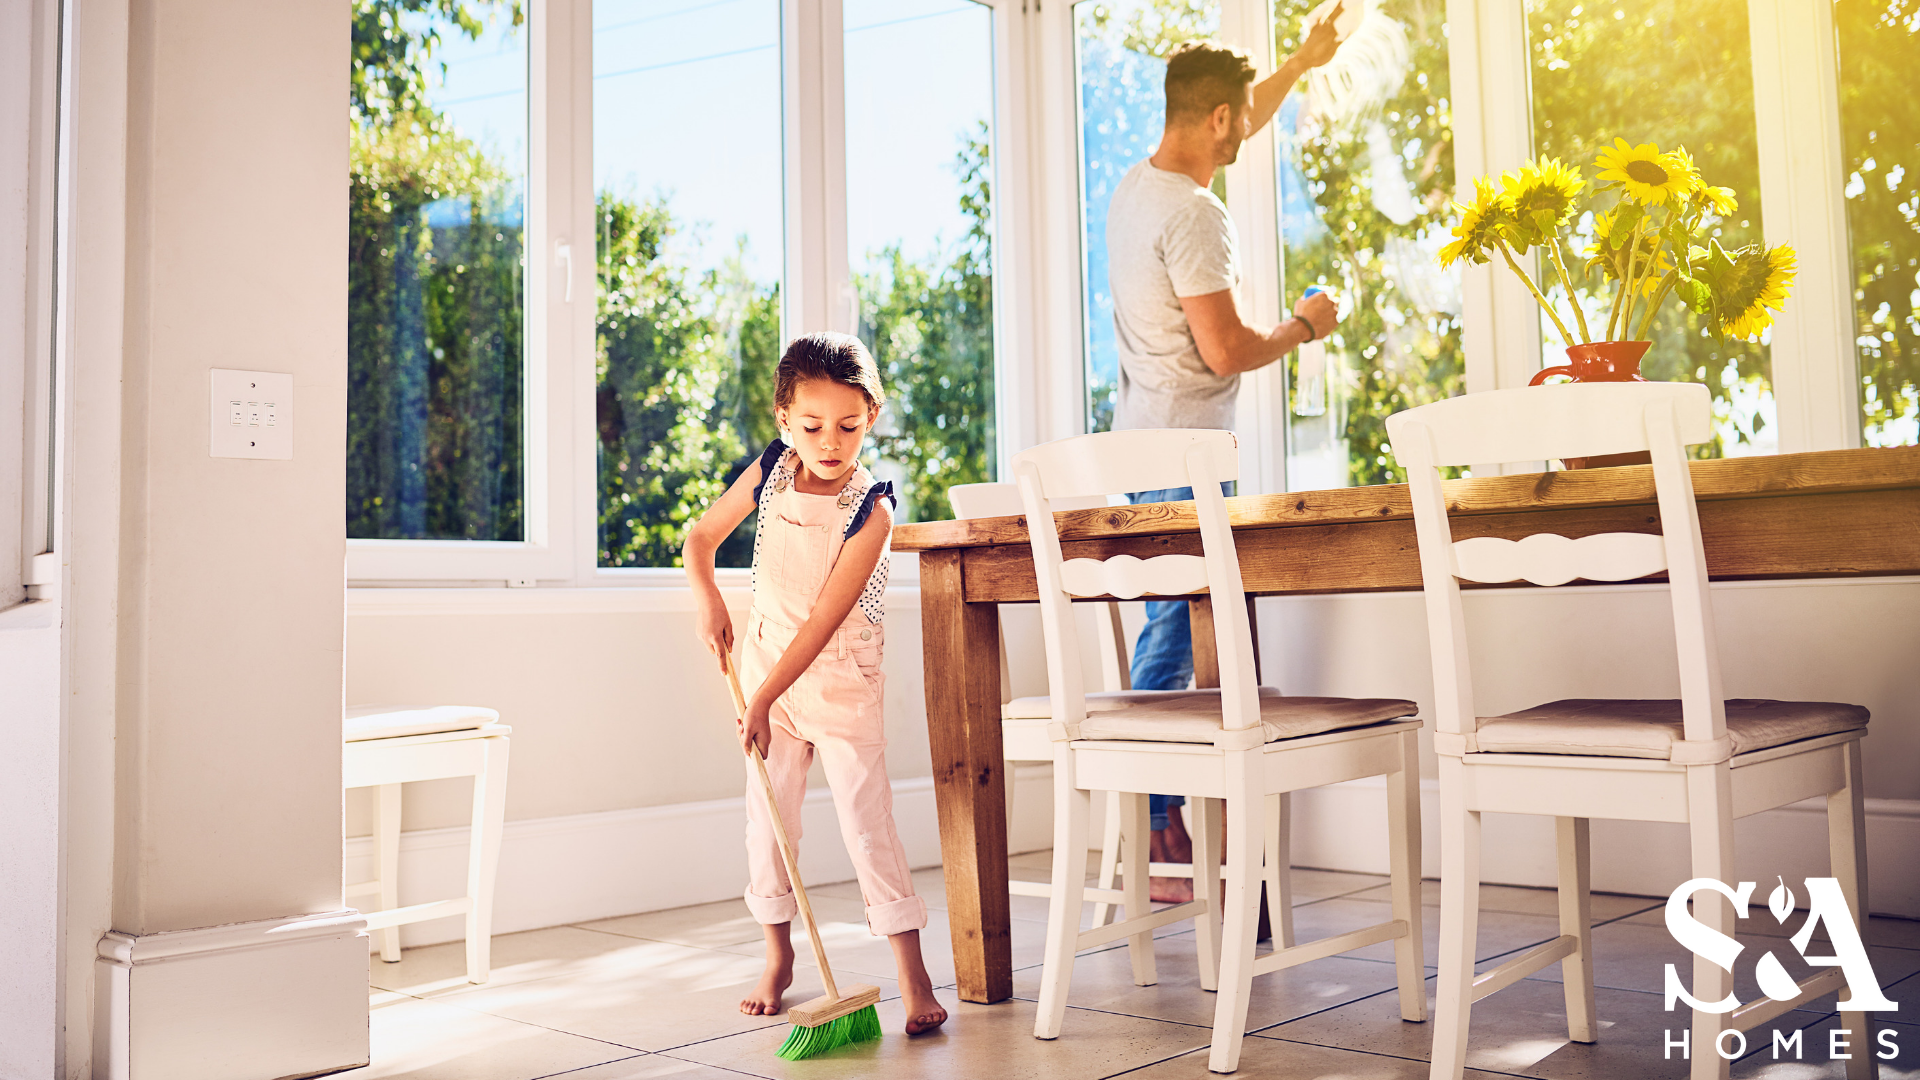 Spring Cleaning Tips from S&A Homes